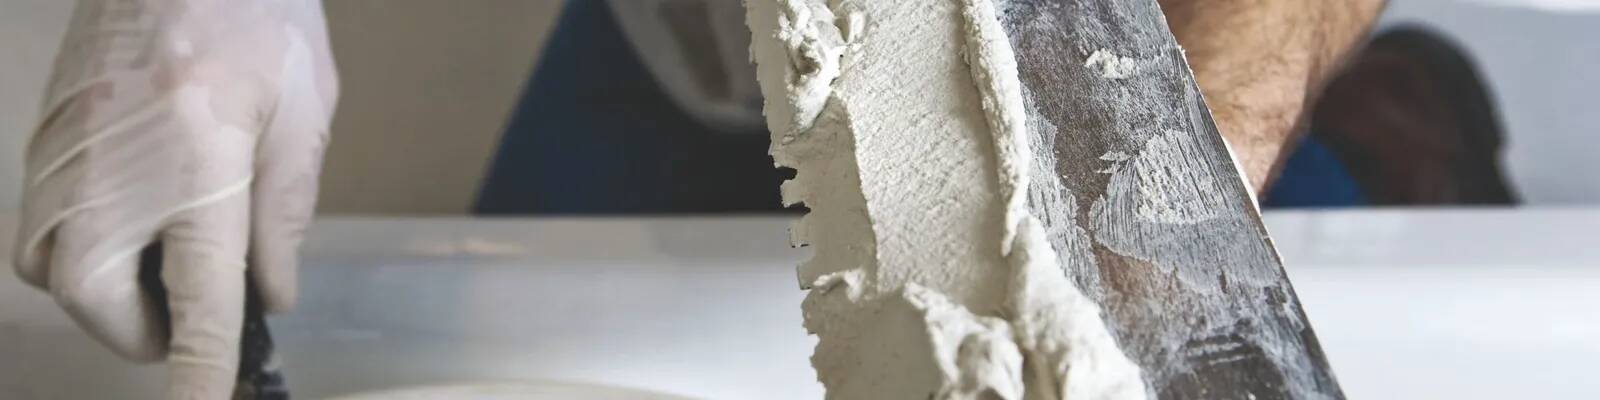 Gypsum finish and putty